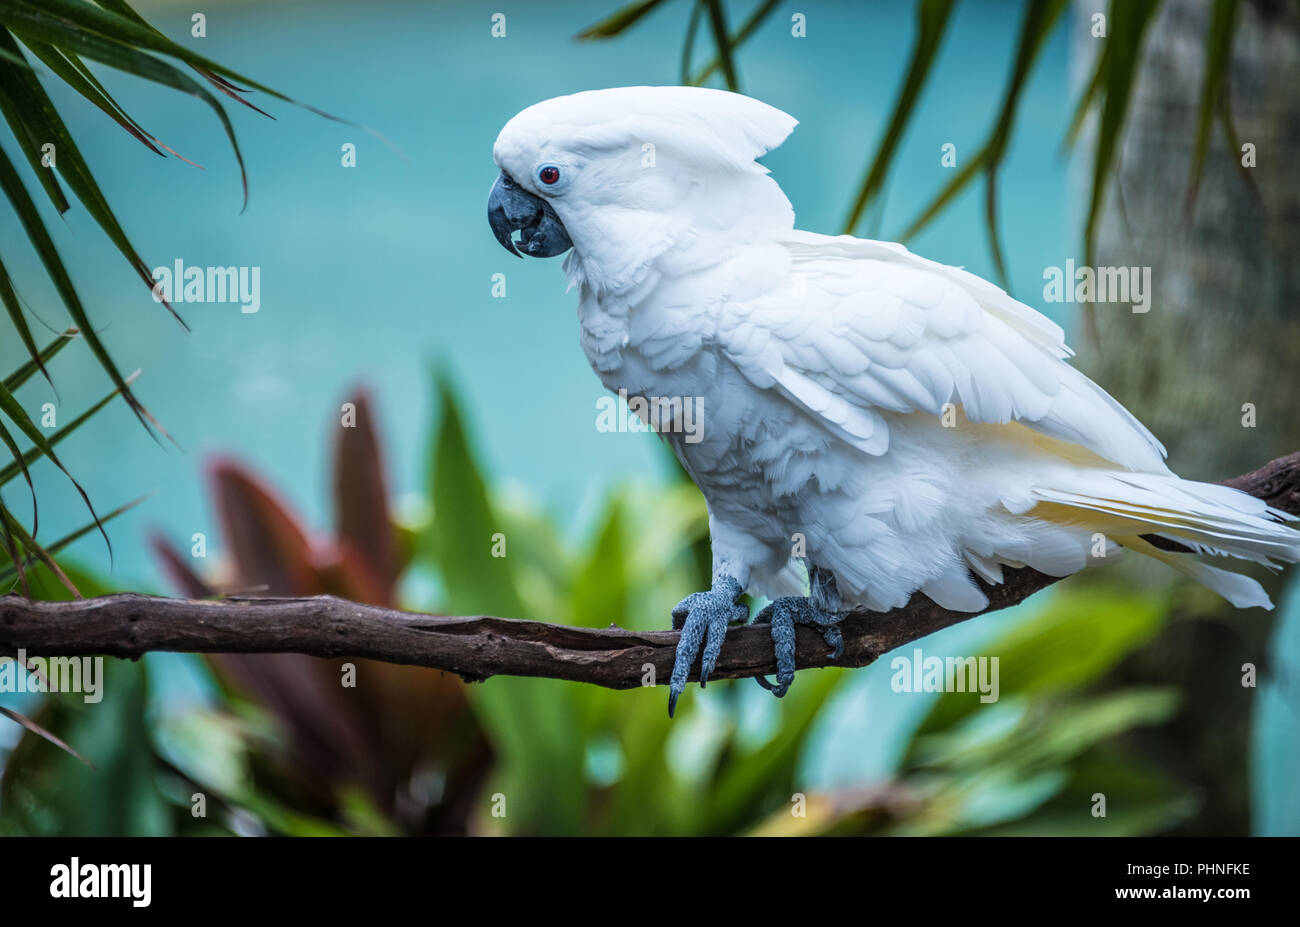 White umbrella cockatoo at St. Augustine Alligator Farm and Zoological Park in St. Augustine, Florida. (USA) - Stock Image